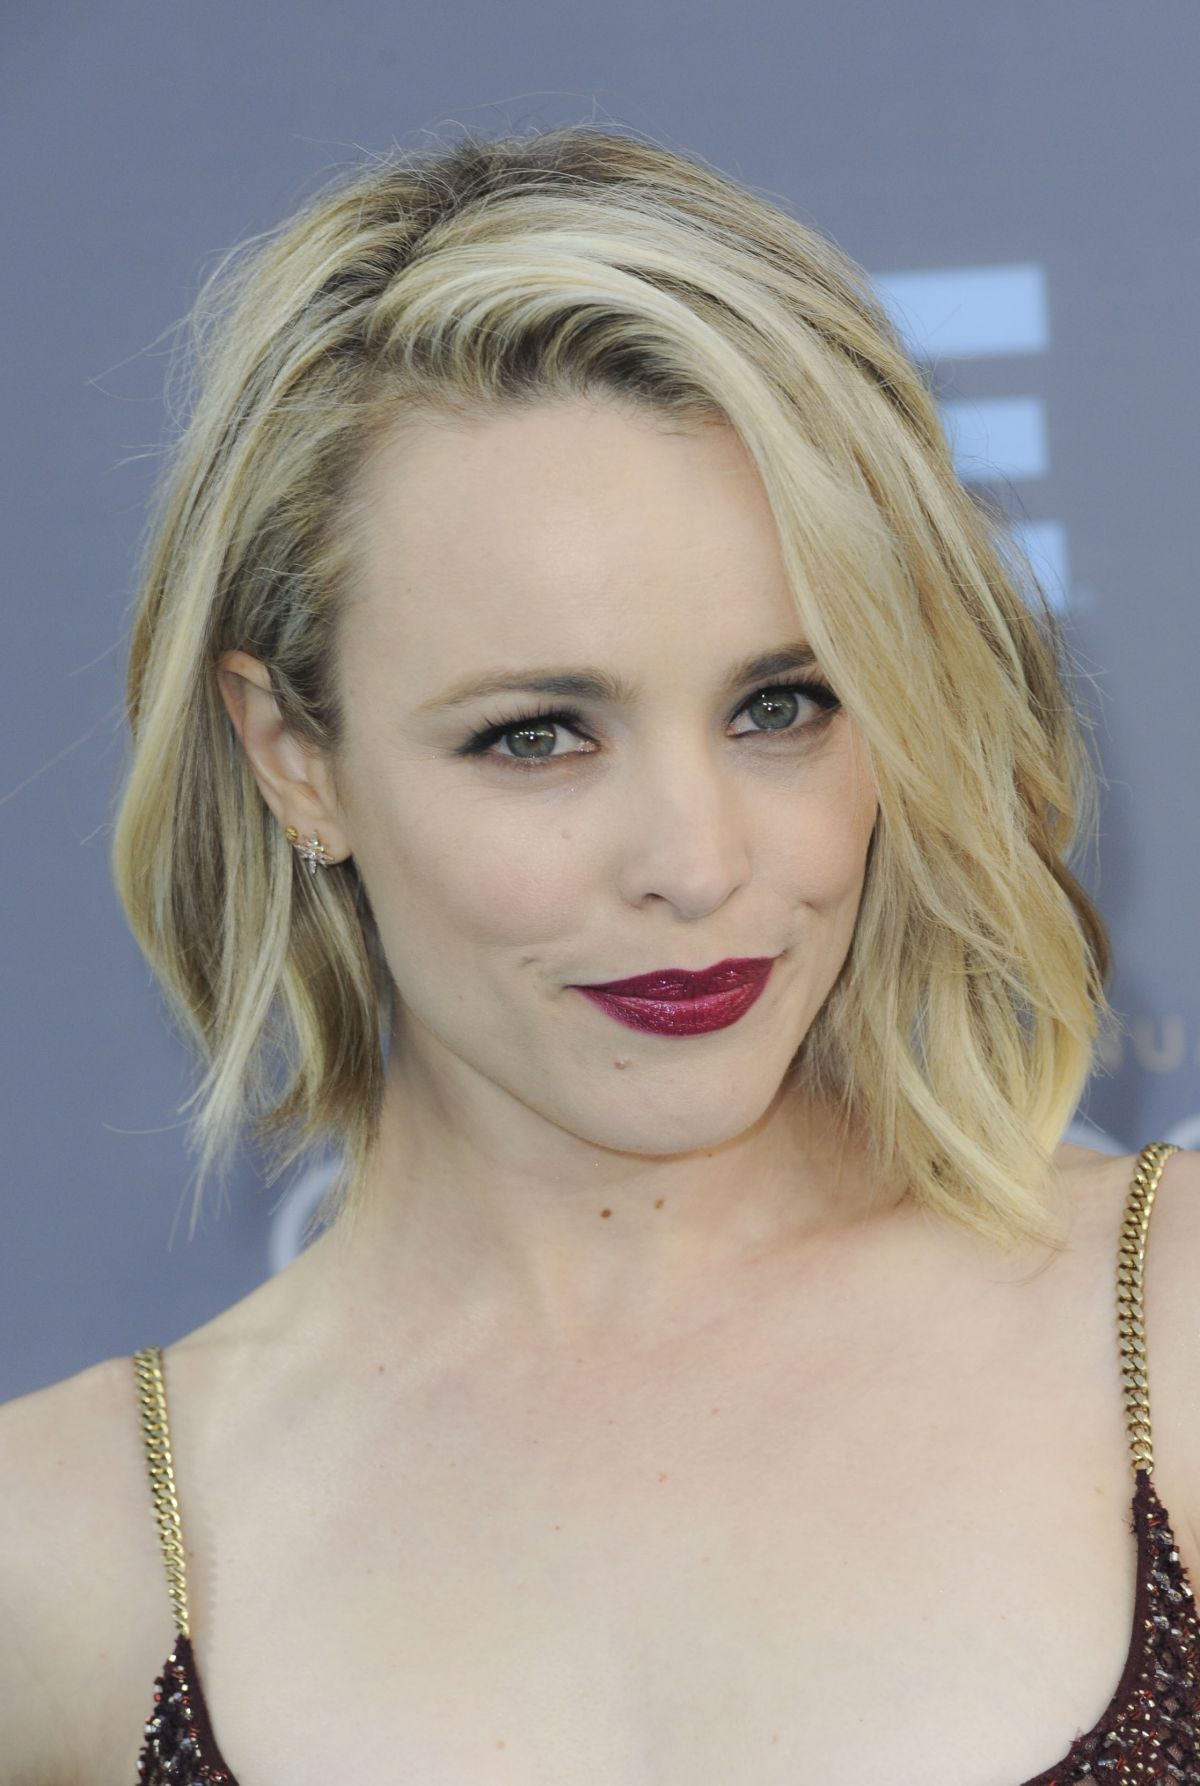 RACHEL MCADAMS at Critics's Choice Awards 2016 in Santa ...